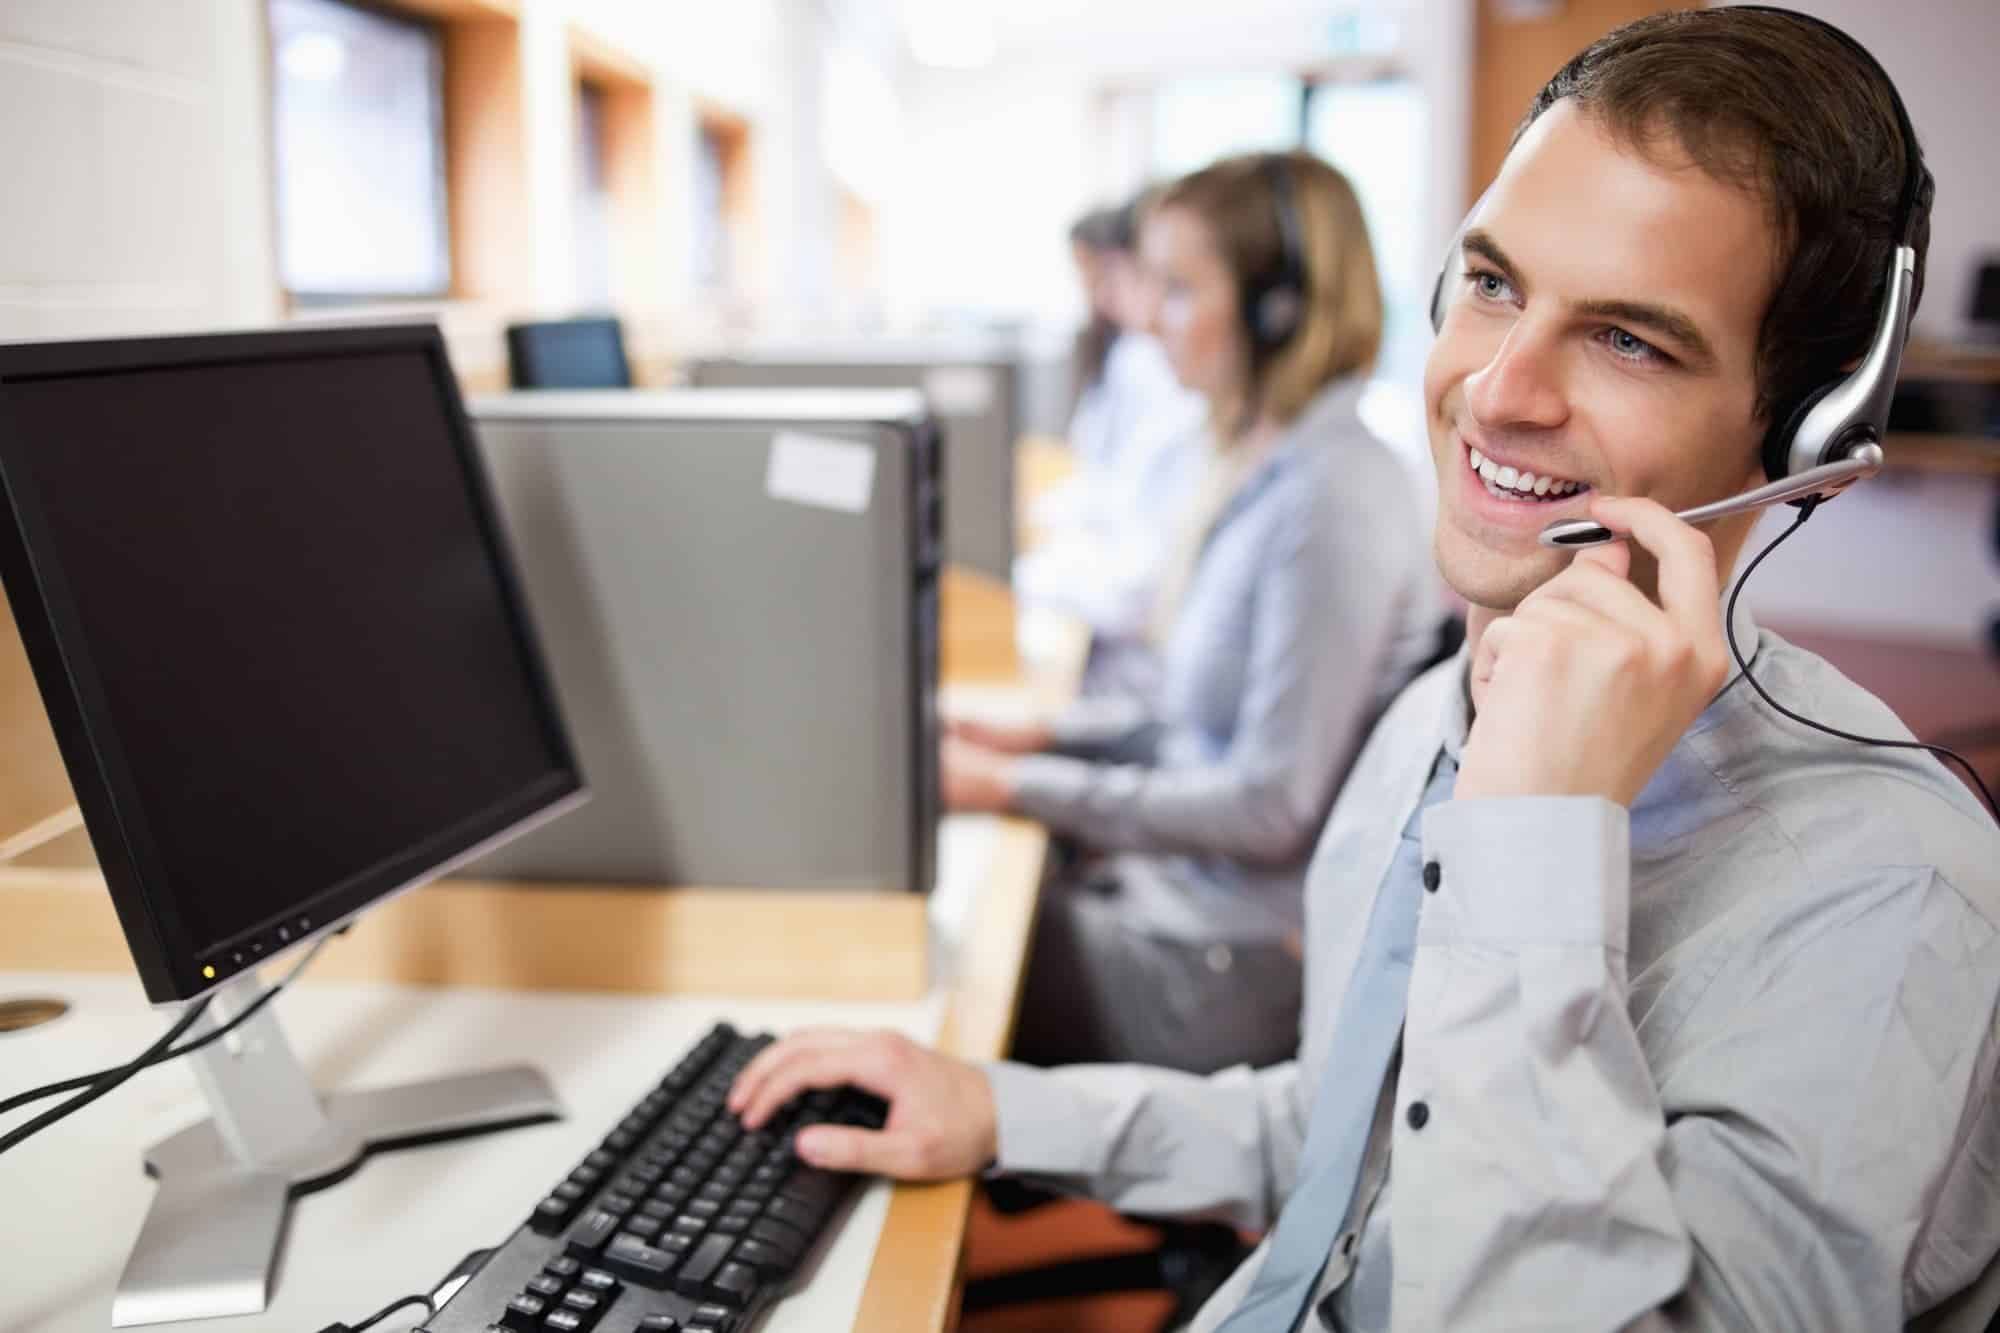 Smiling assistant using a headset